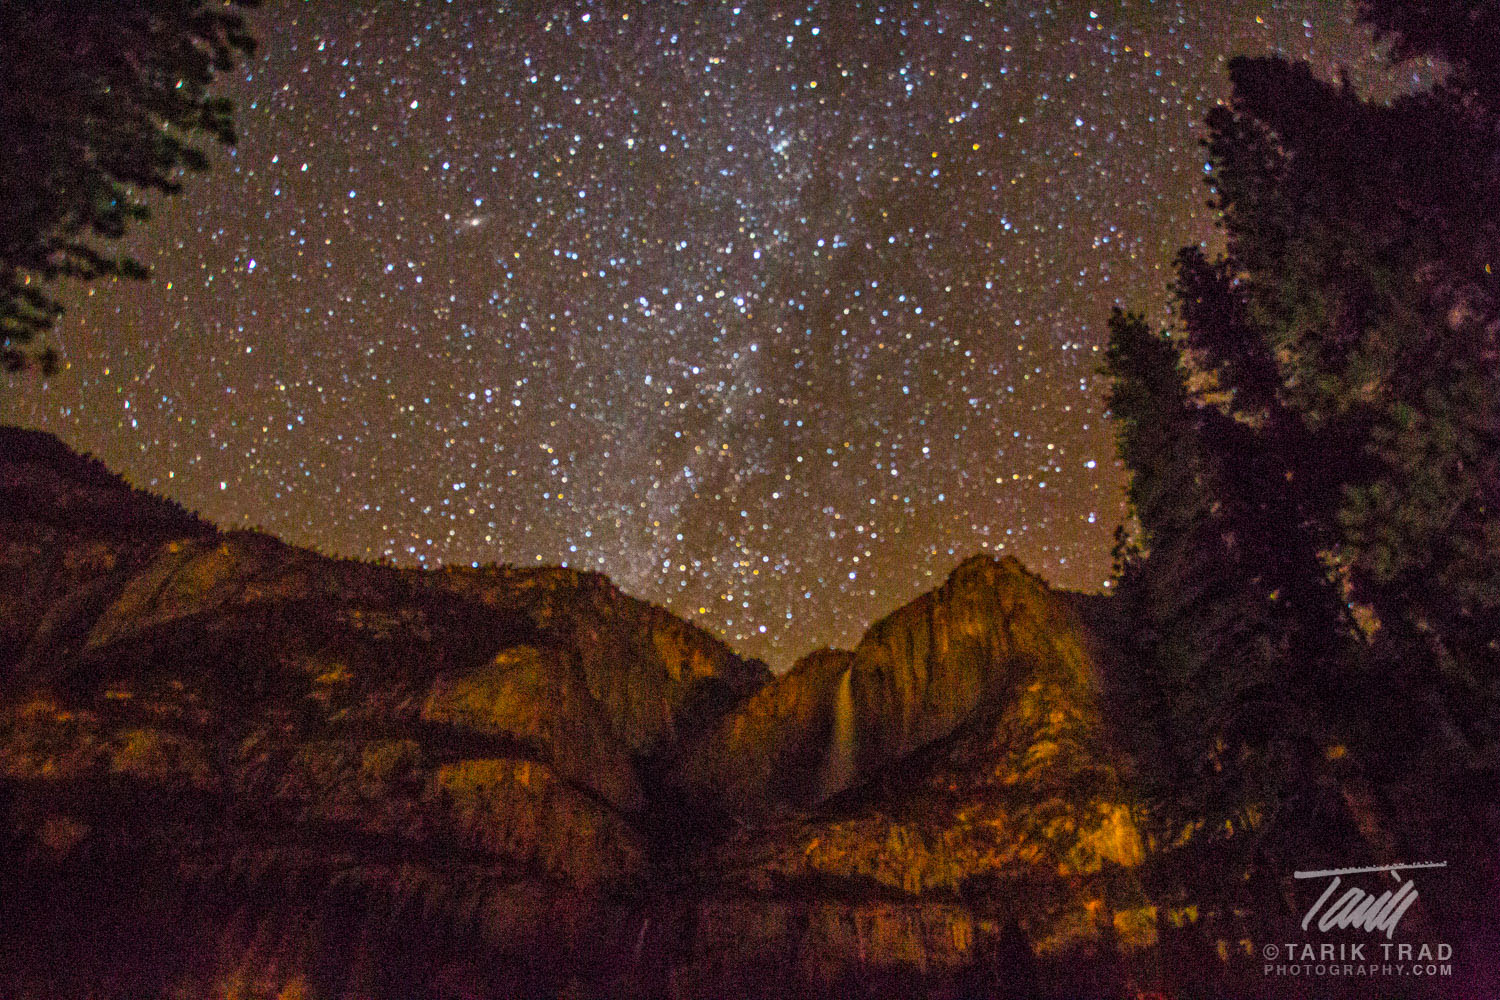 Yosemite Falls and the Milky Way. Click to view large image.